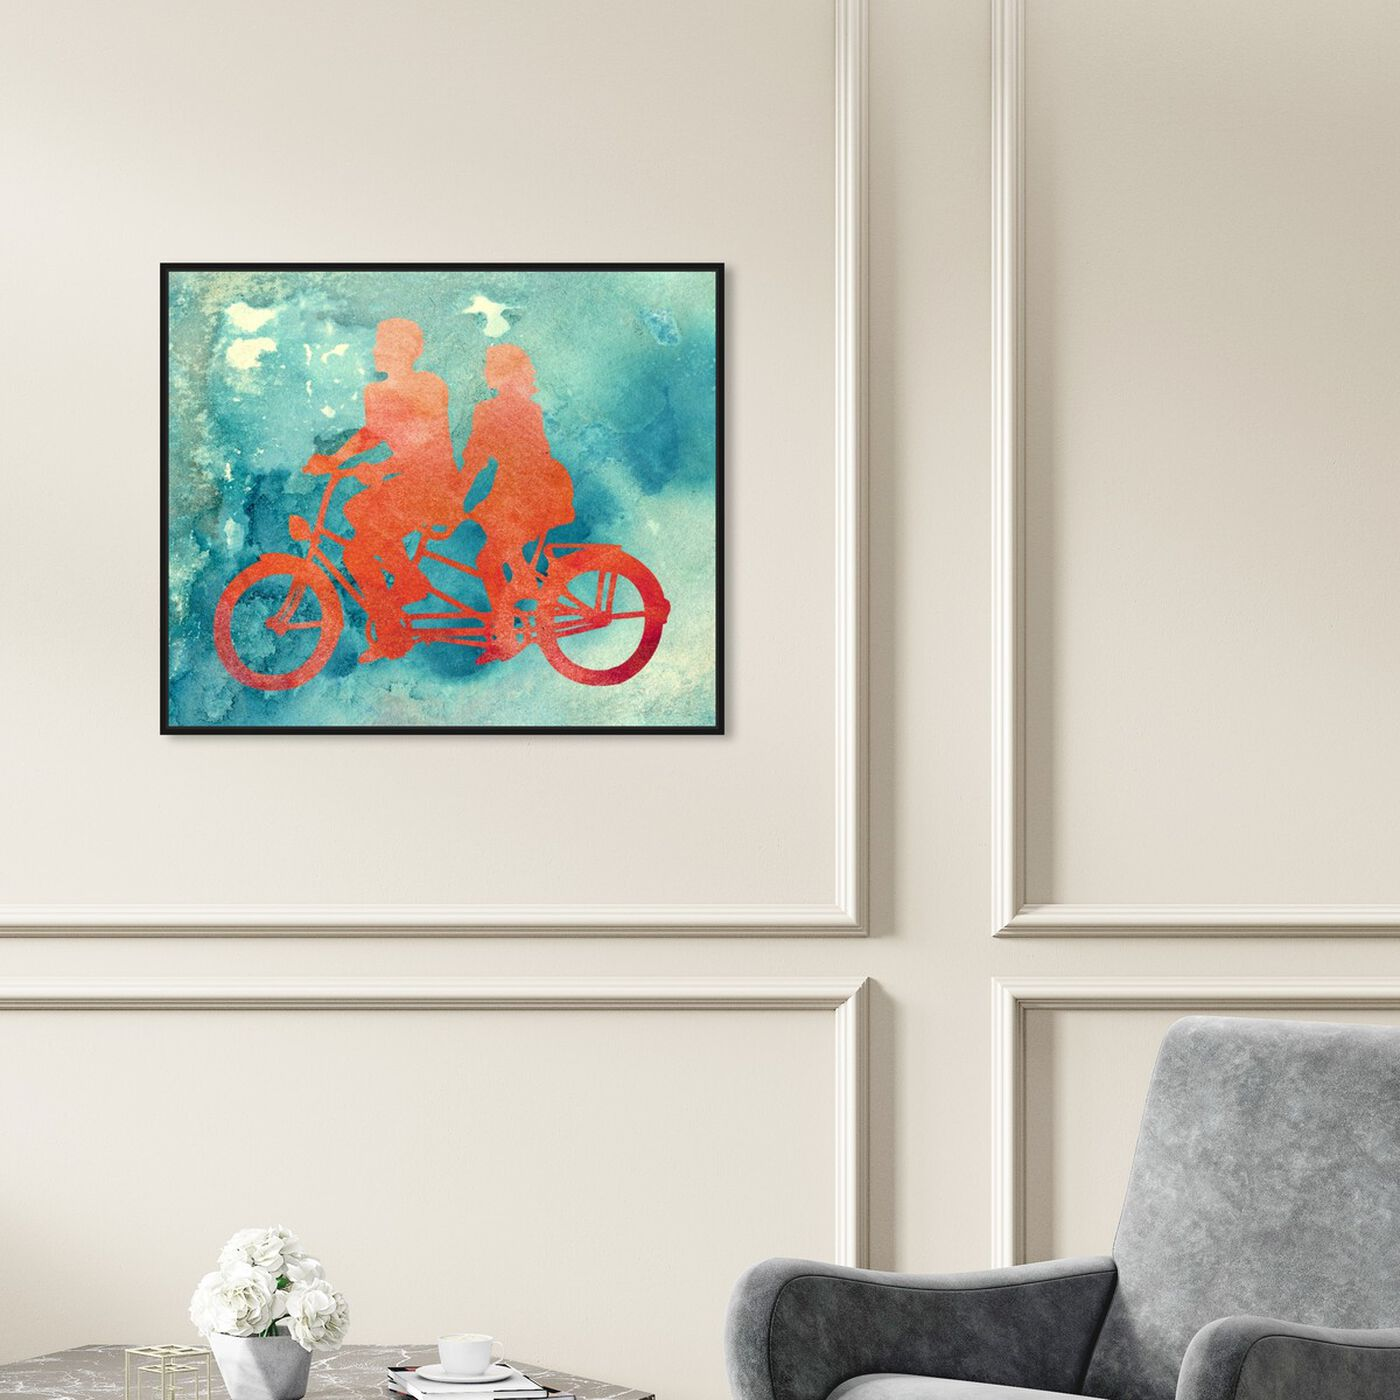 Hanging view of La Bicyclette featuring transportation and bicycles art.